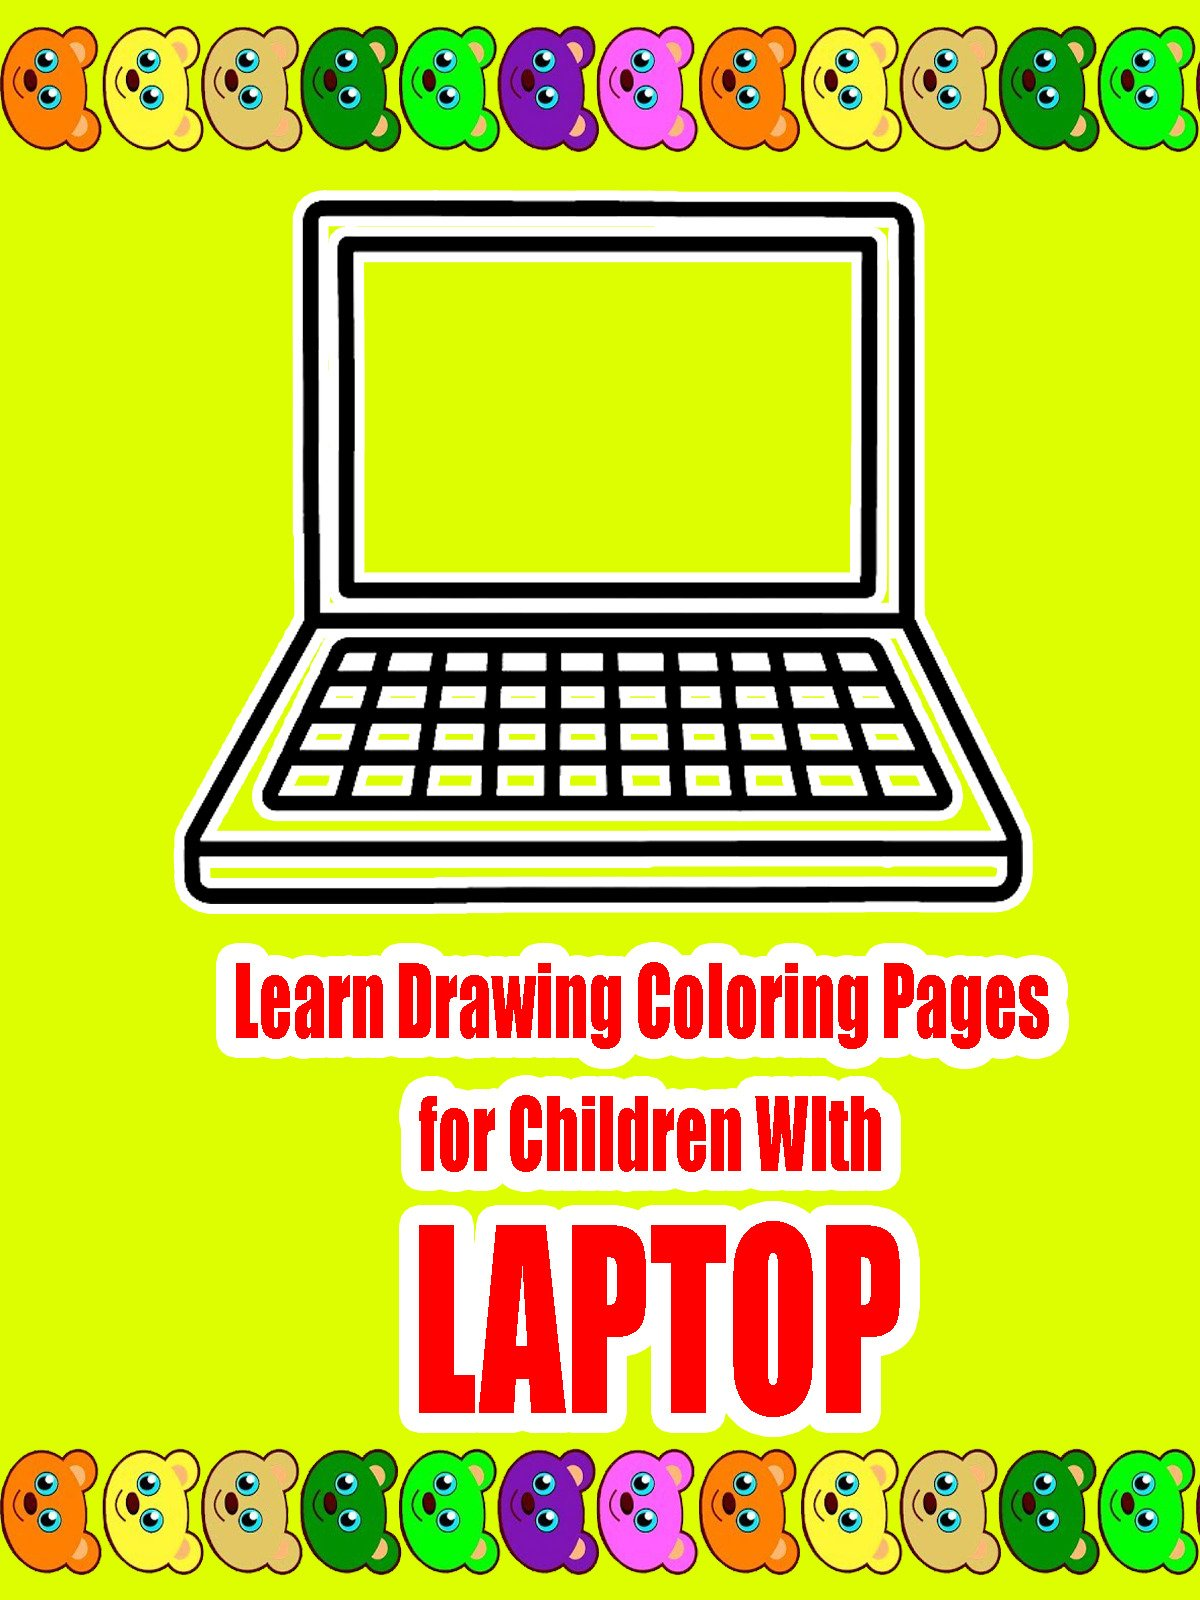 Learn Drawing Coloring Pages for Children WIth Laptop on Amazon Prime Video UK